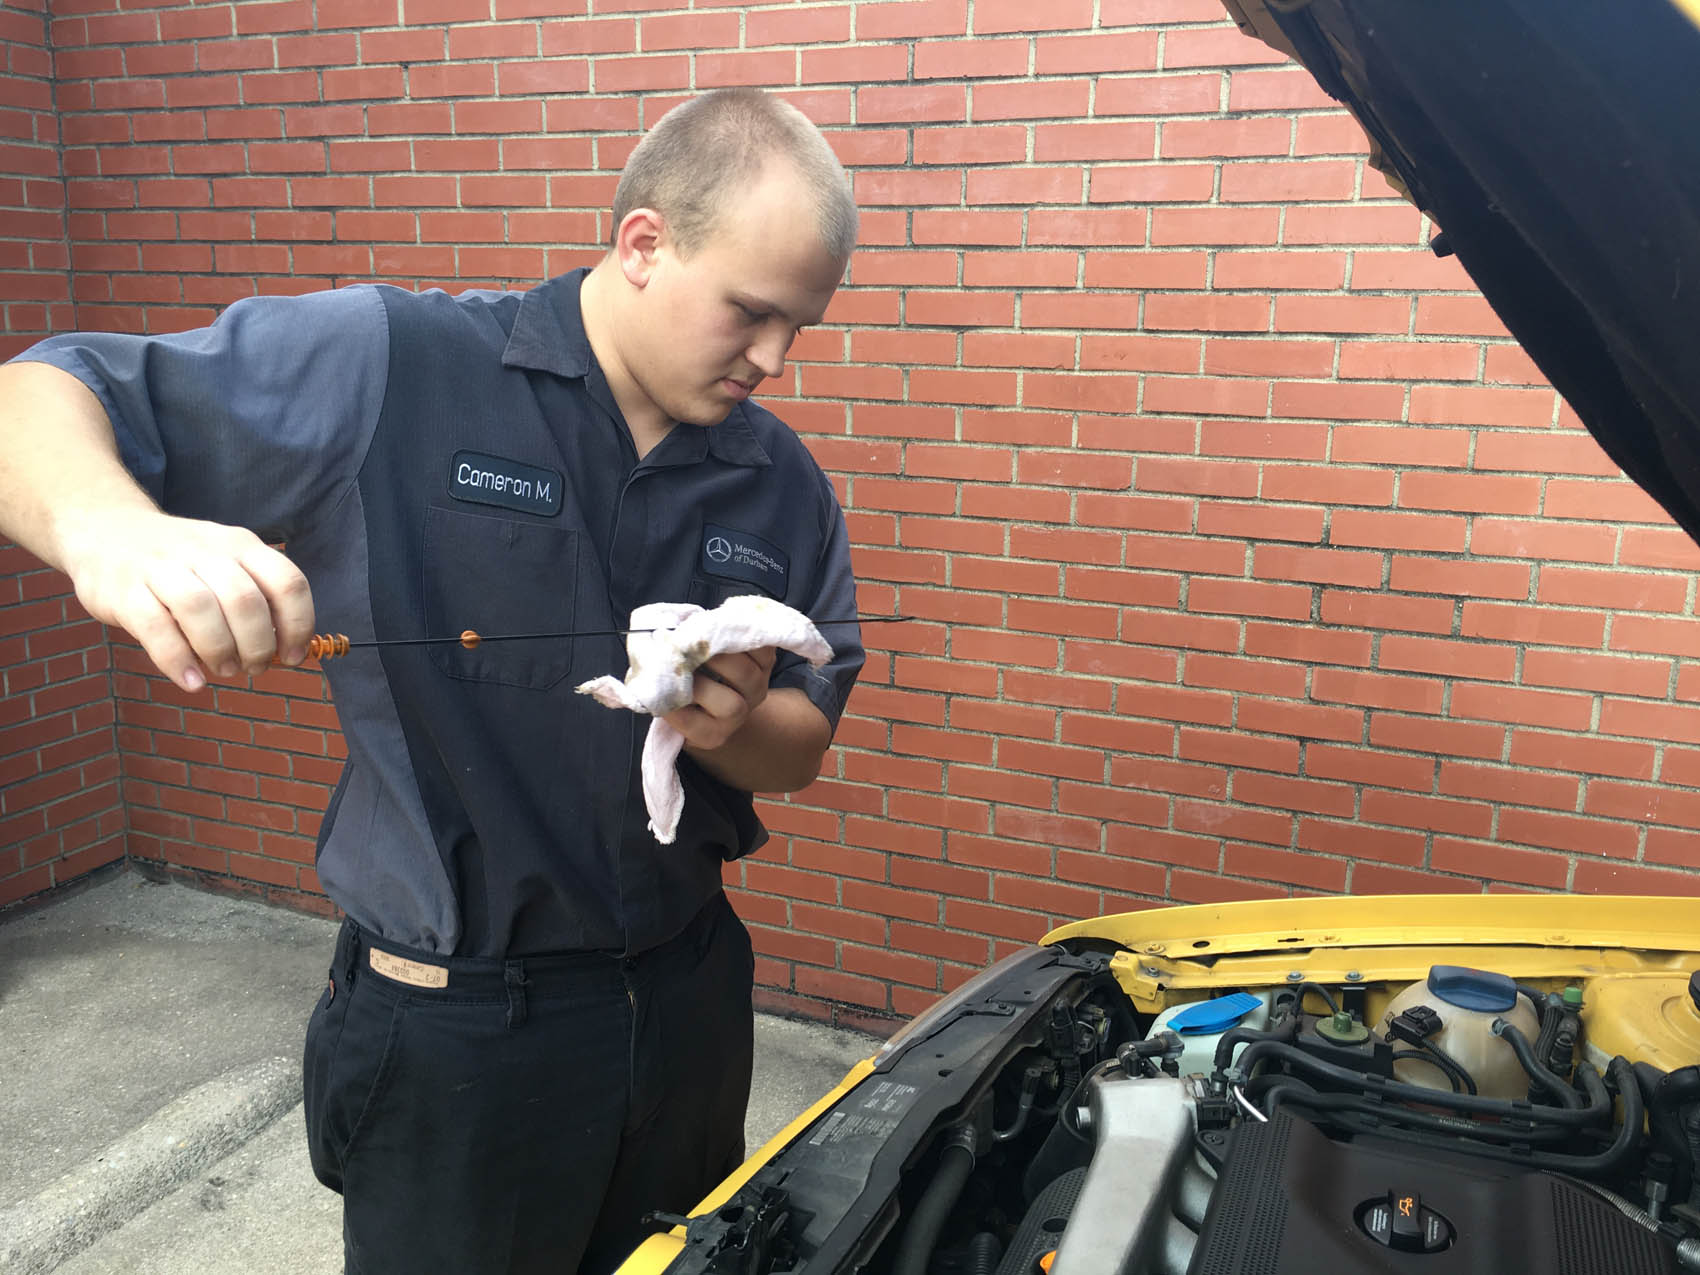 Click to enlarge,  Zachary Horner, The Sanford Herald. Cameron Miller, 20, of Sanford, checks a fluid level on his car. Miller graduated with an associate's degree from Central Carolina Community College a year-and-a-half ago and now works at Mercedes-Benz of Durham alongside his father Tom.